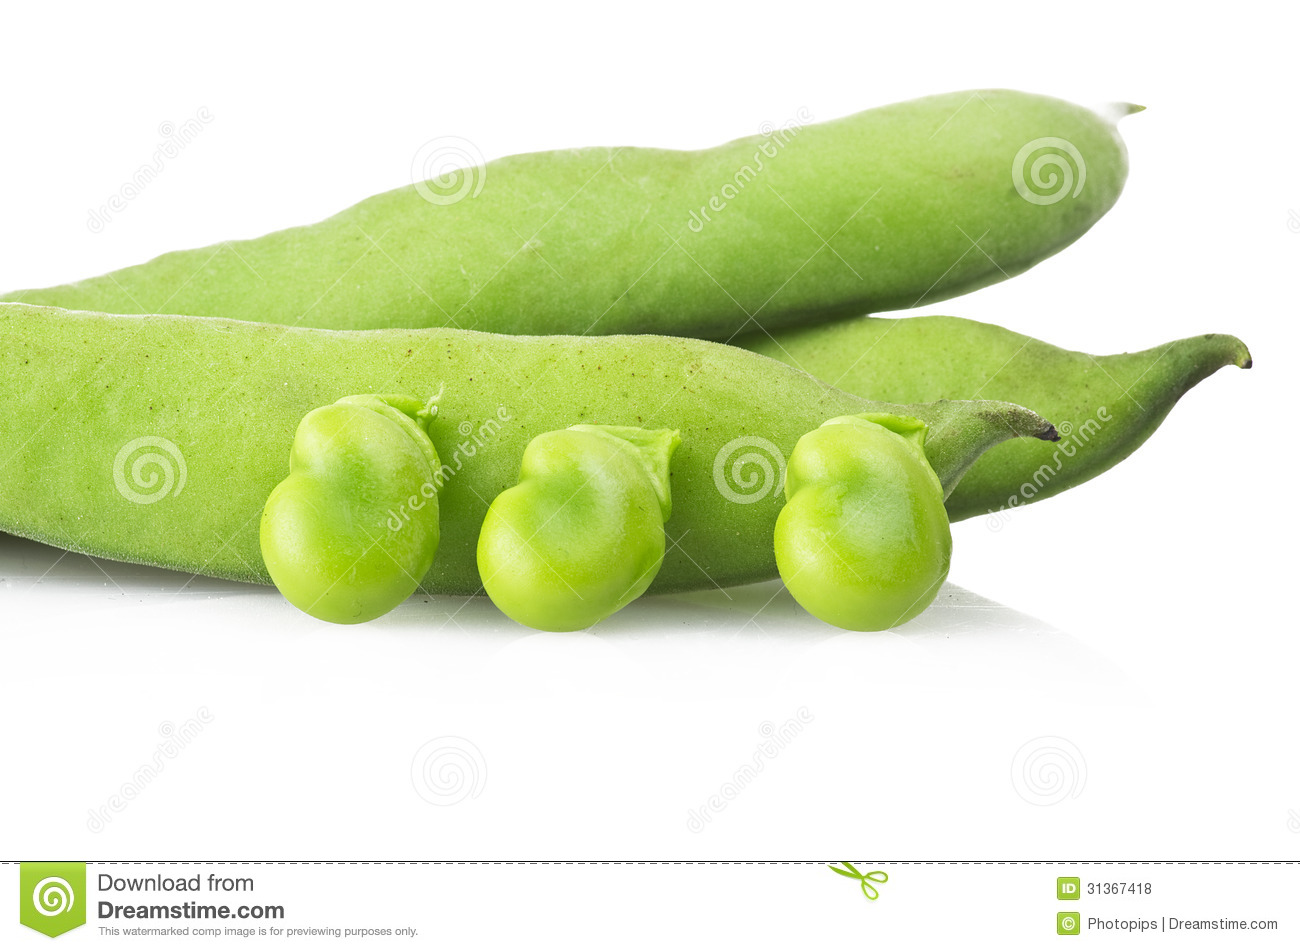 how to cook fresh broad beans from the garden